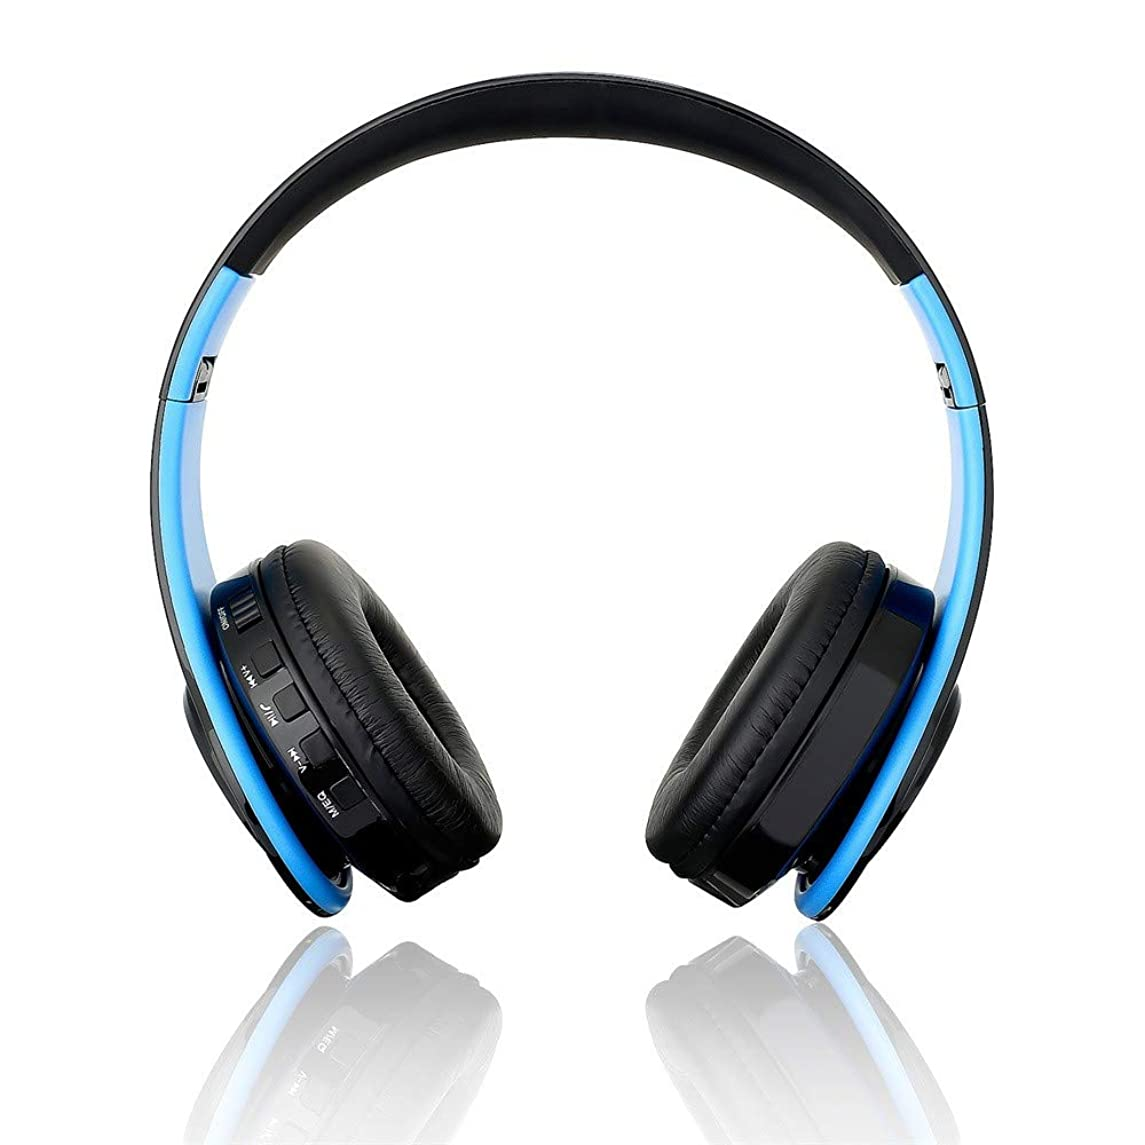 Aobiny New Headphones Bluetooth Headset Earphone Wireless Headphones Stereo Foldable Sport Earphone Microphone Headset Handfree MP3 Player